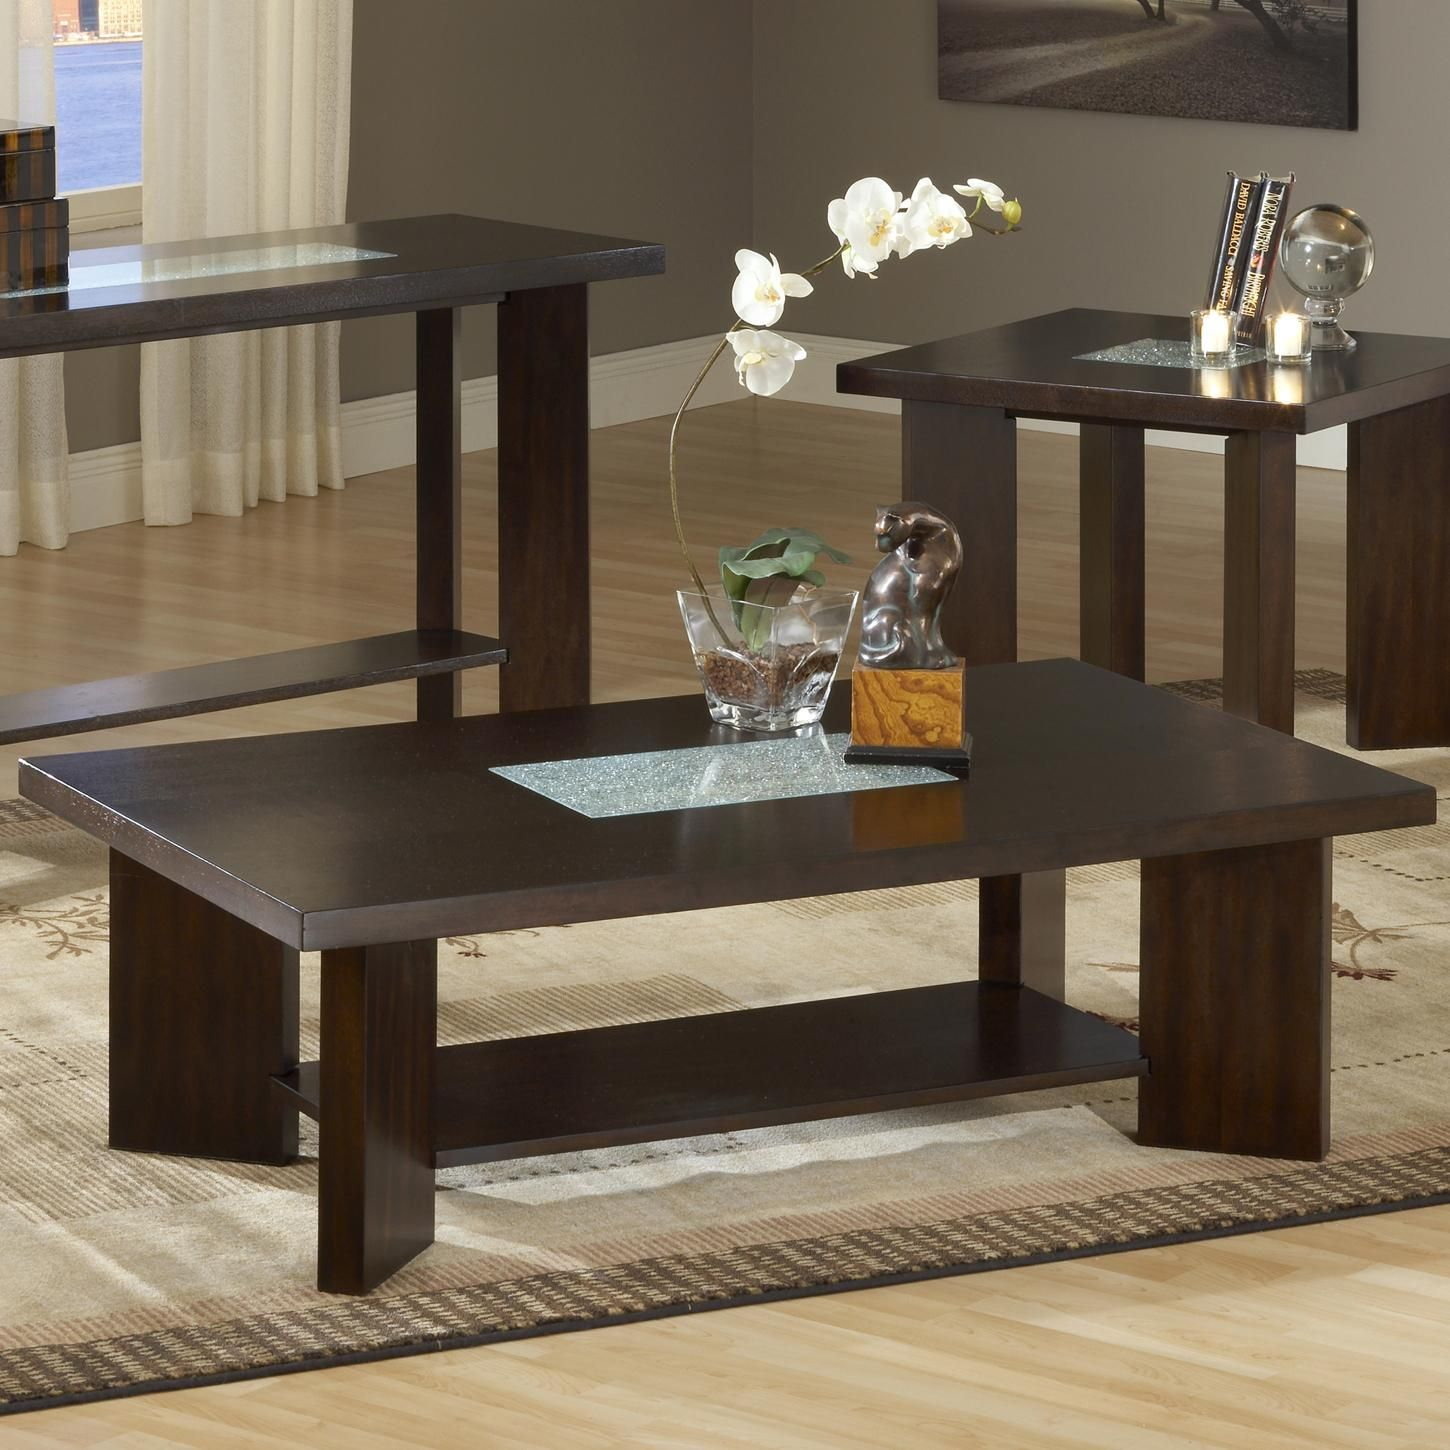 Delano Cocktail Table With Cracked Glass Insert By Steve Silver Coffee Table Furniture Living Room Table Sets [ 1450 x 1450 Pixel ]